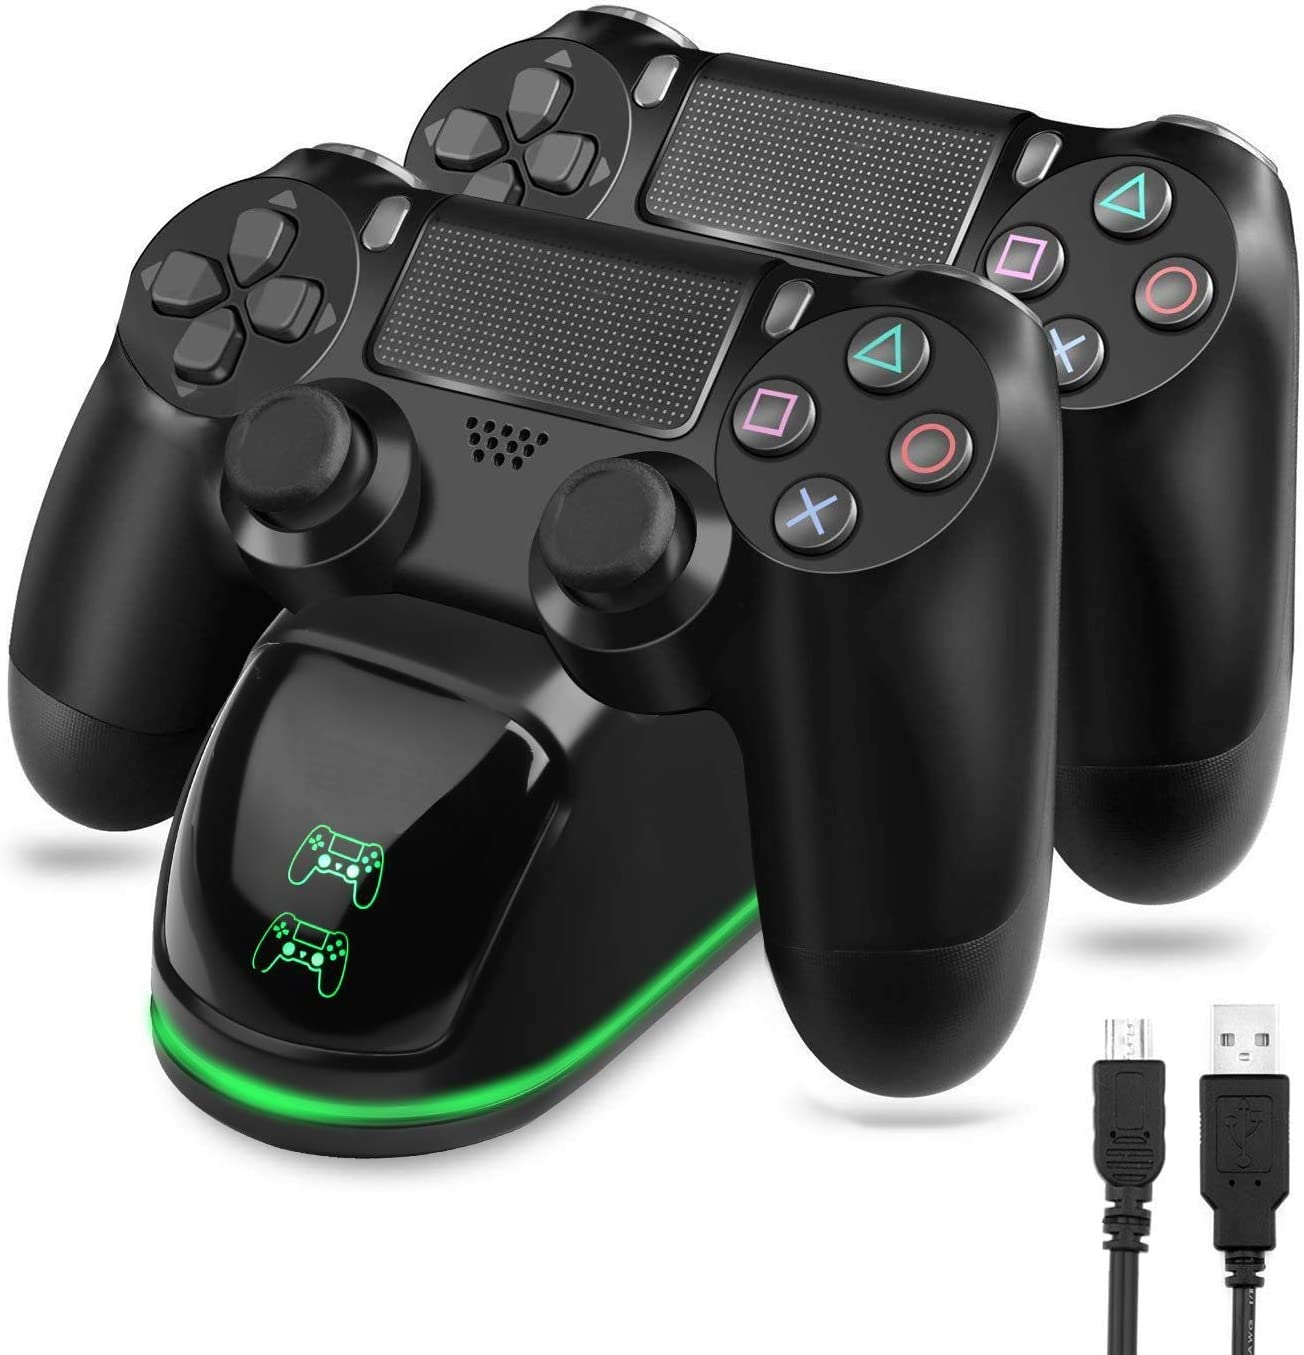 TGJOR PS4 Controller Charger - DualShock 4 PS4 Wireless Controller USB High-Speed Charging Dock, Playstation 4 Charging Station for Sony Playstation4 / PS4 / PS4 Slim / PS4 Pro Wireless Controller